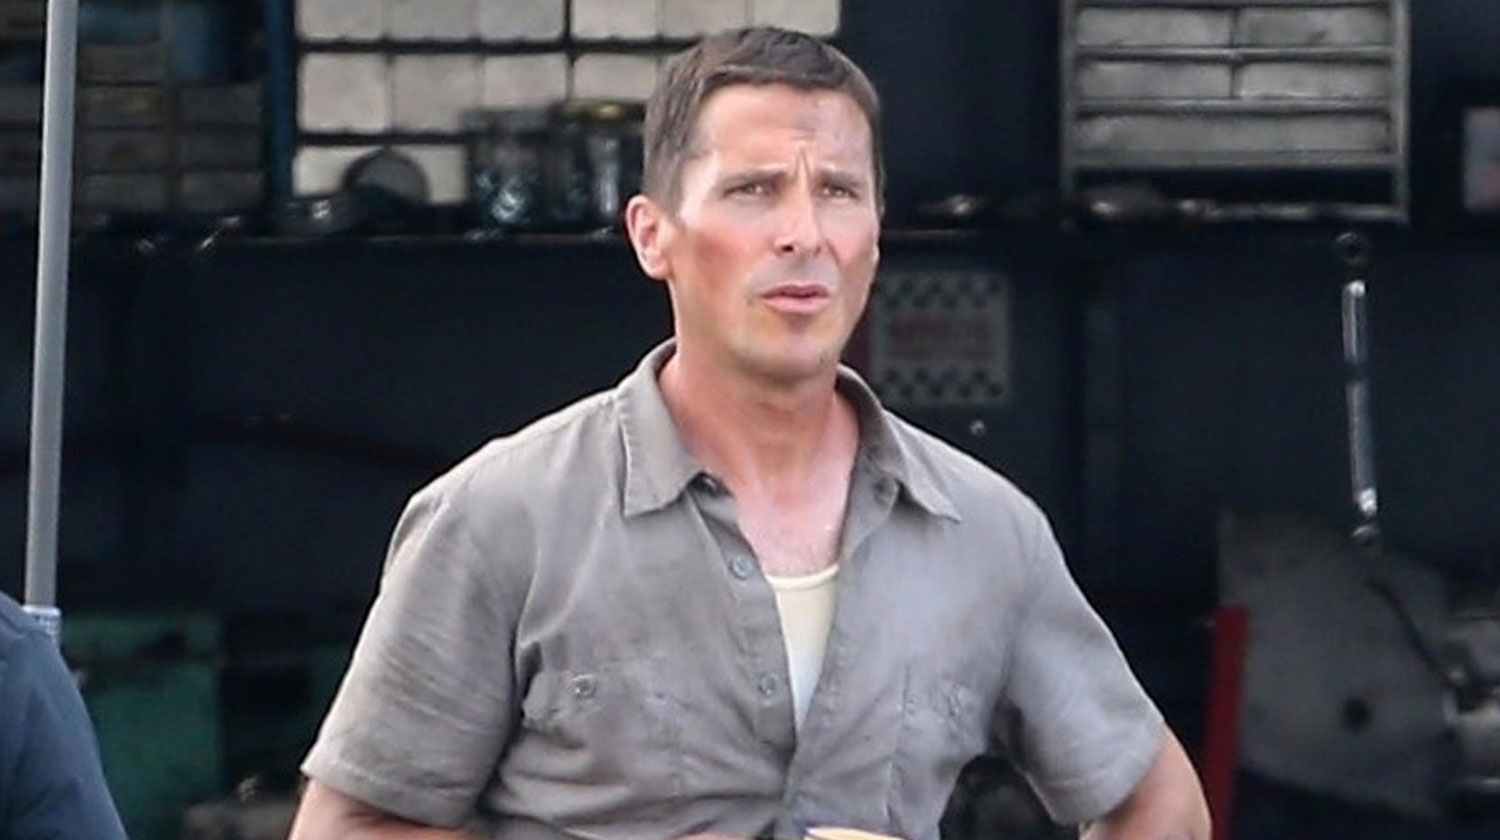 Christian Bale Sports Slimmed Down Figure In First Ford V Ferrari On Set Photos Christian Bale Just Jared